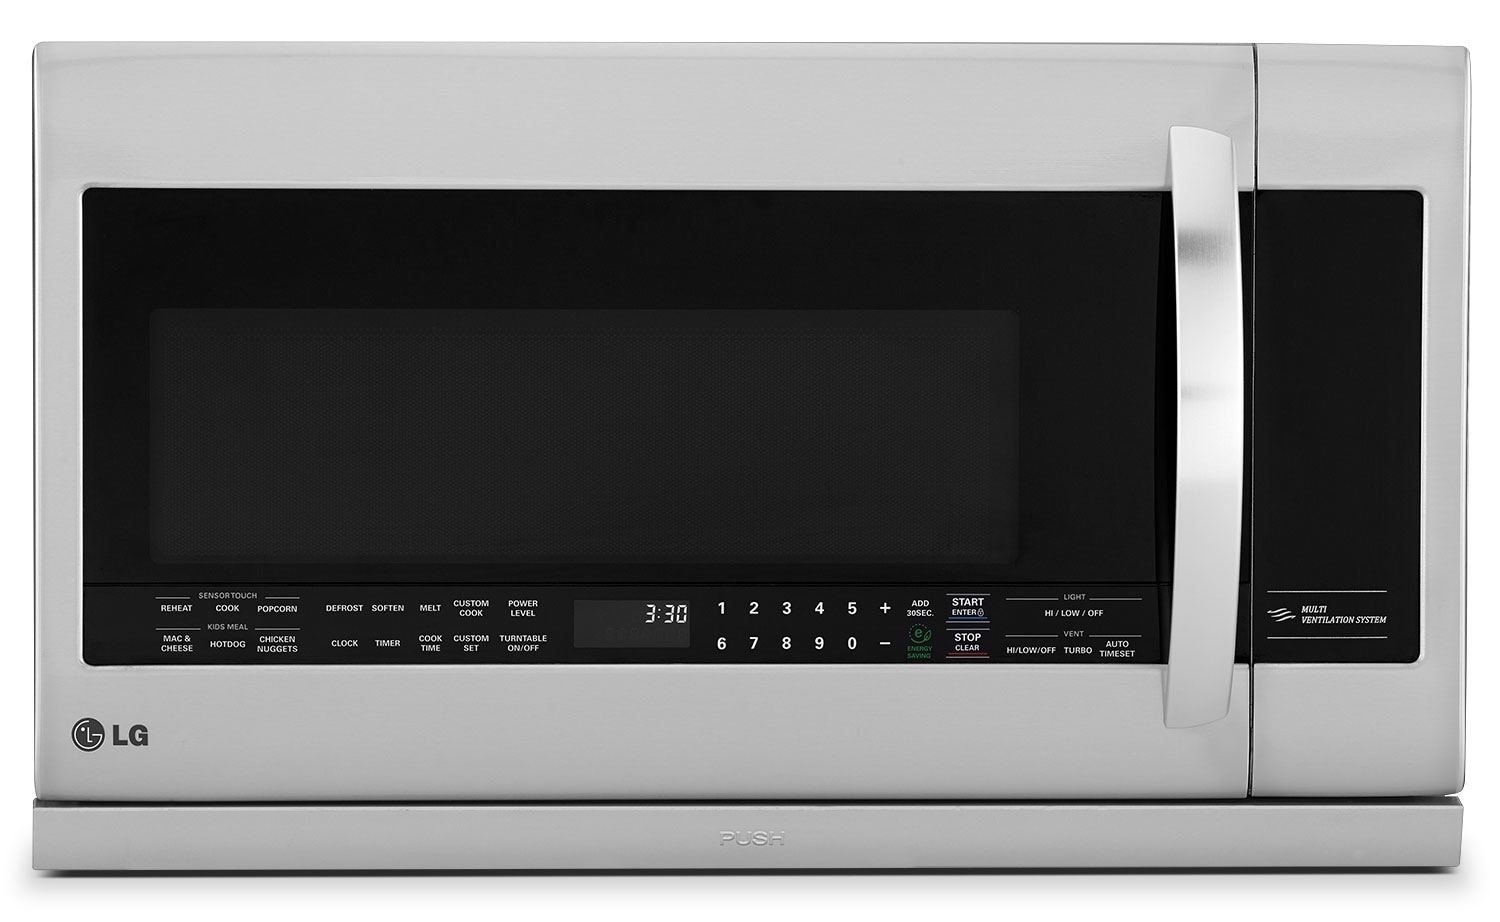 Cooking Products - LG Appliances Stainless Steel Over-the-Range Microwave (2.2 Cu. Ft.) - LMV2257ST